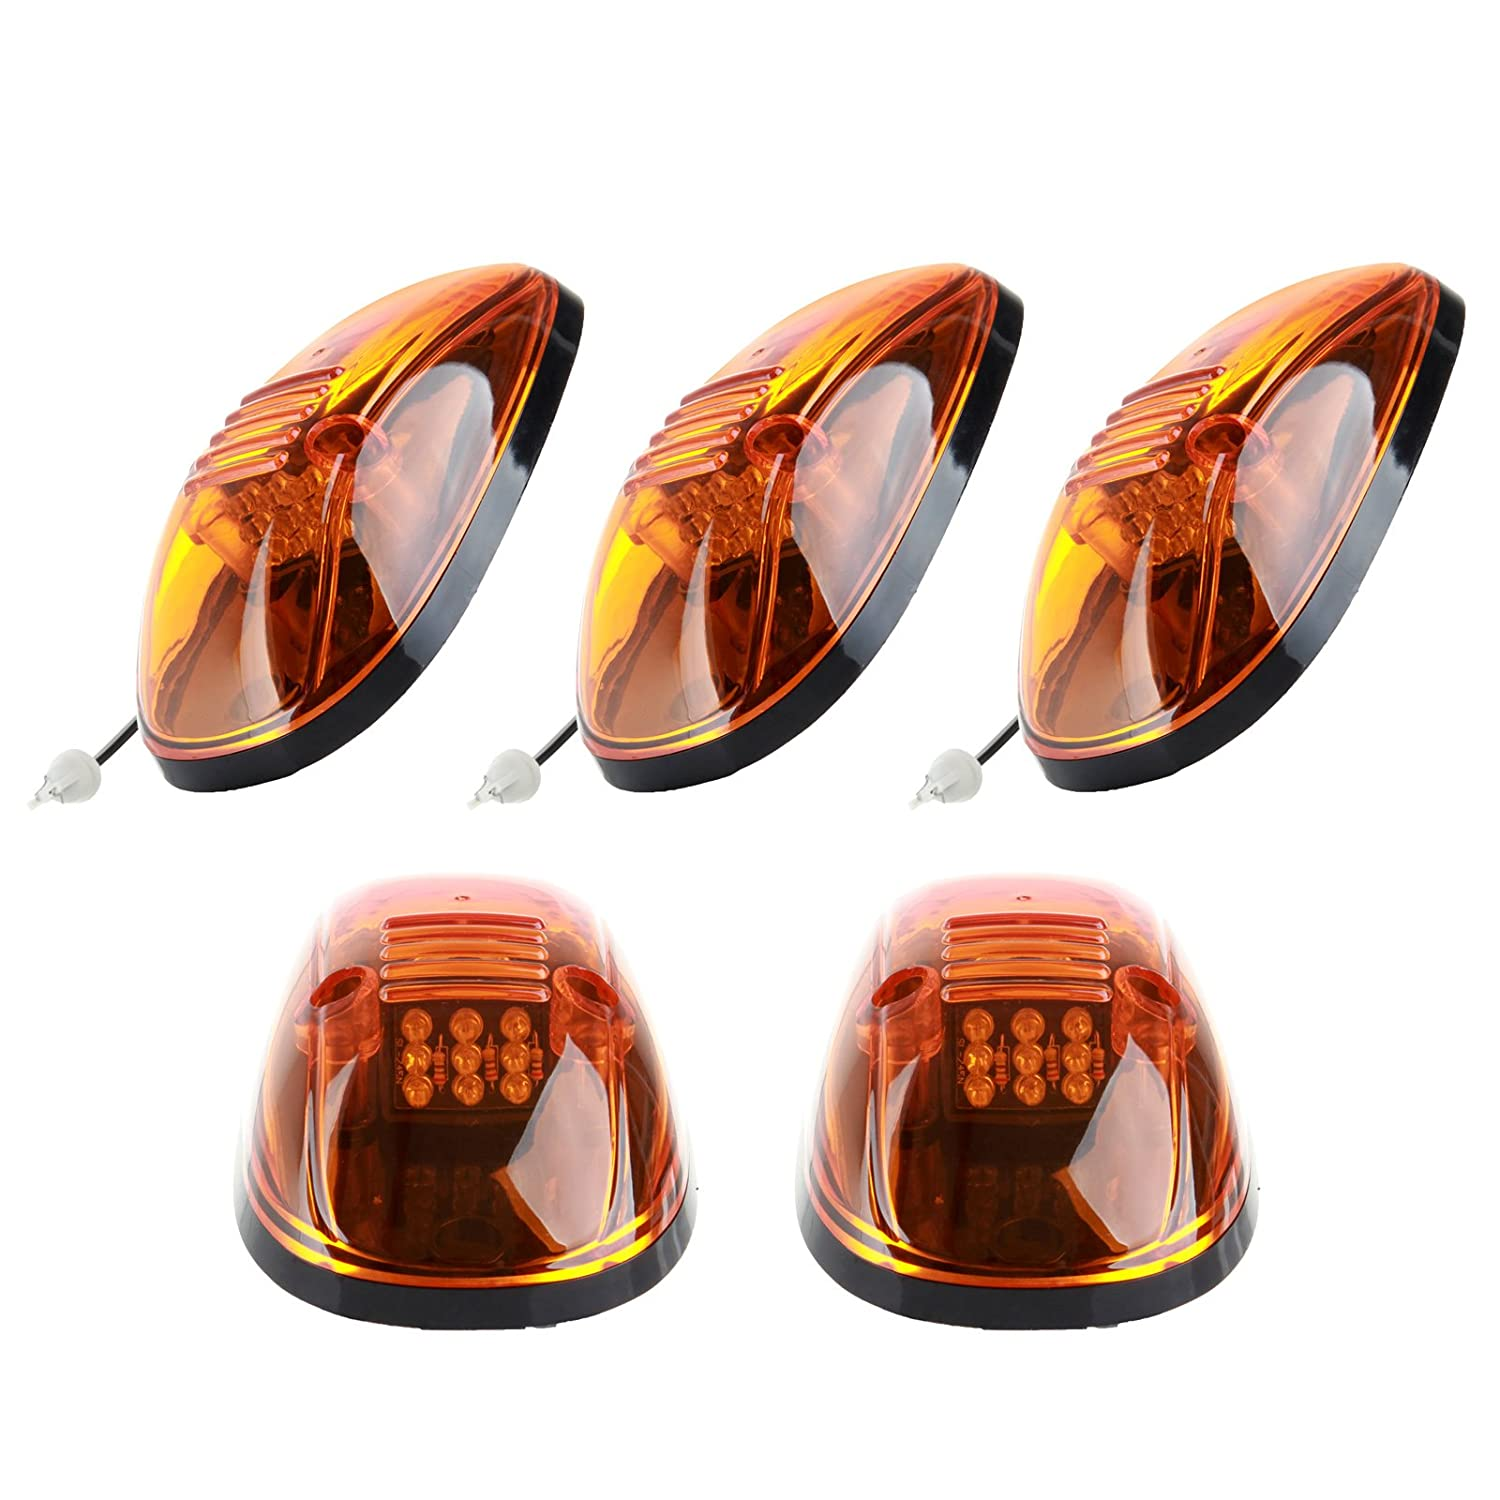 Ccicciyu 5 Pack Amber Cab Roof Marker Clearance Light Lamp Wiring Harness Covers For 1999 2002 Dodge